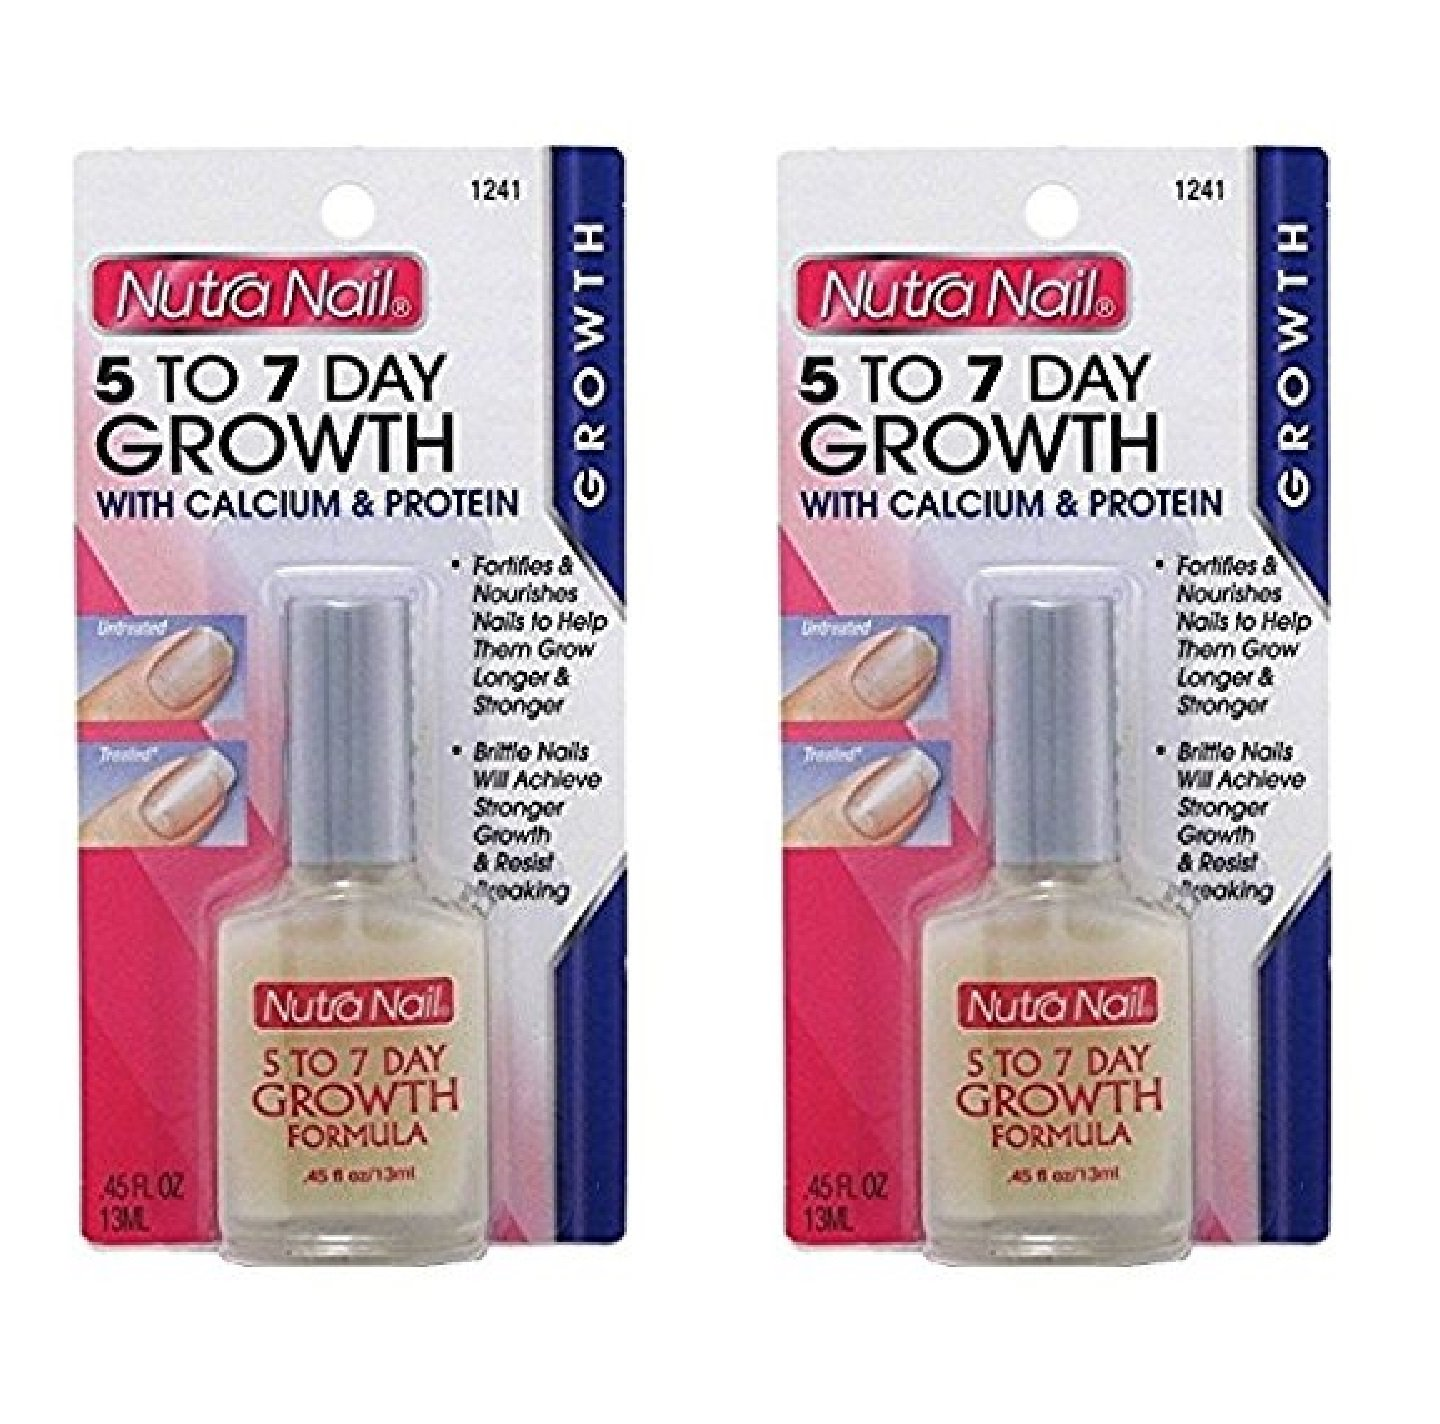 Amazon.com : Nutra Nail 5 To 7 Day Growth with Calcium and Protein ...